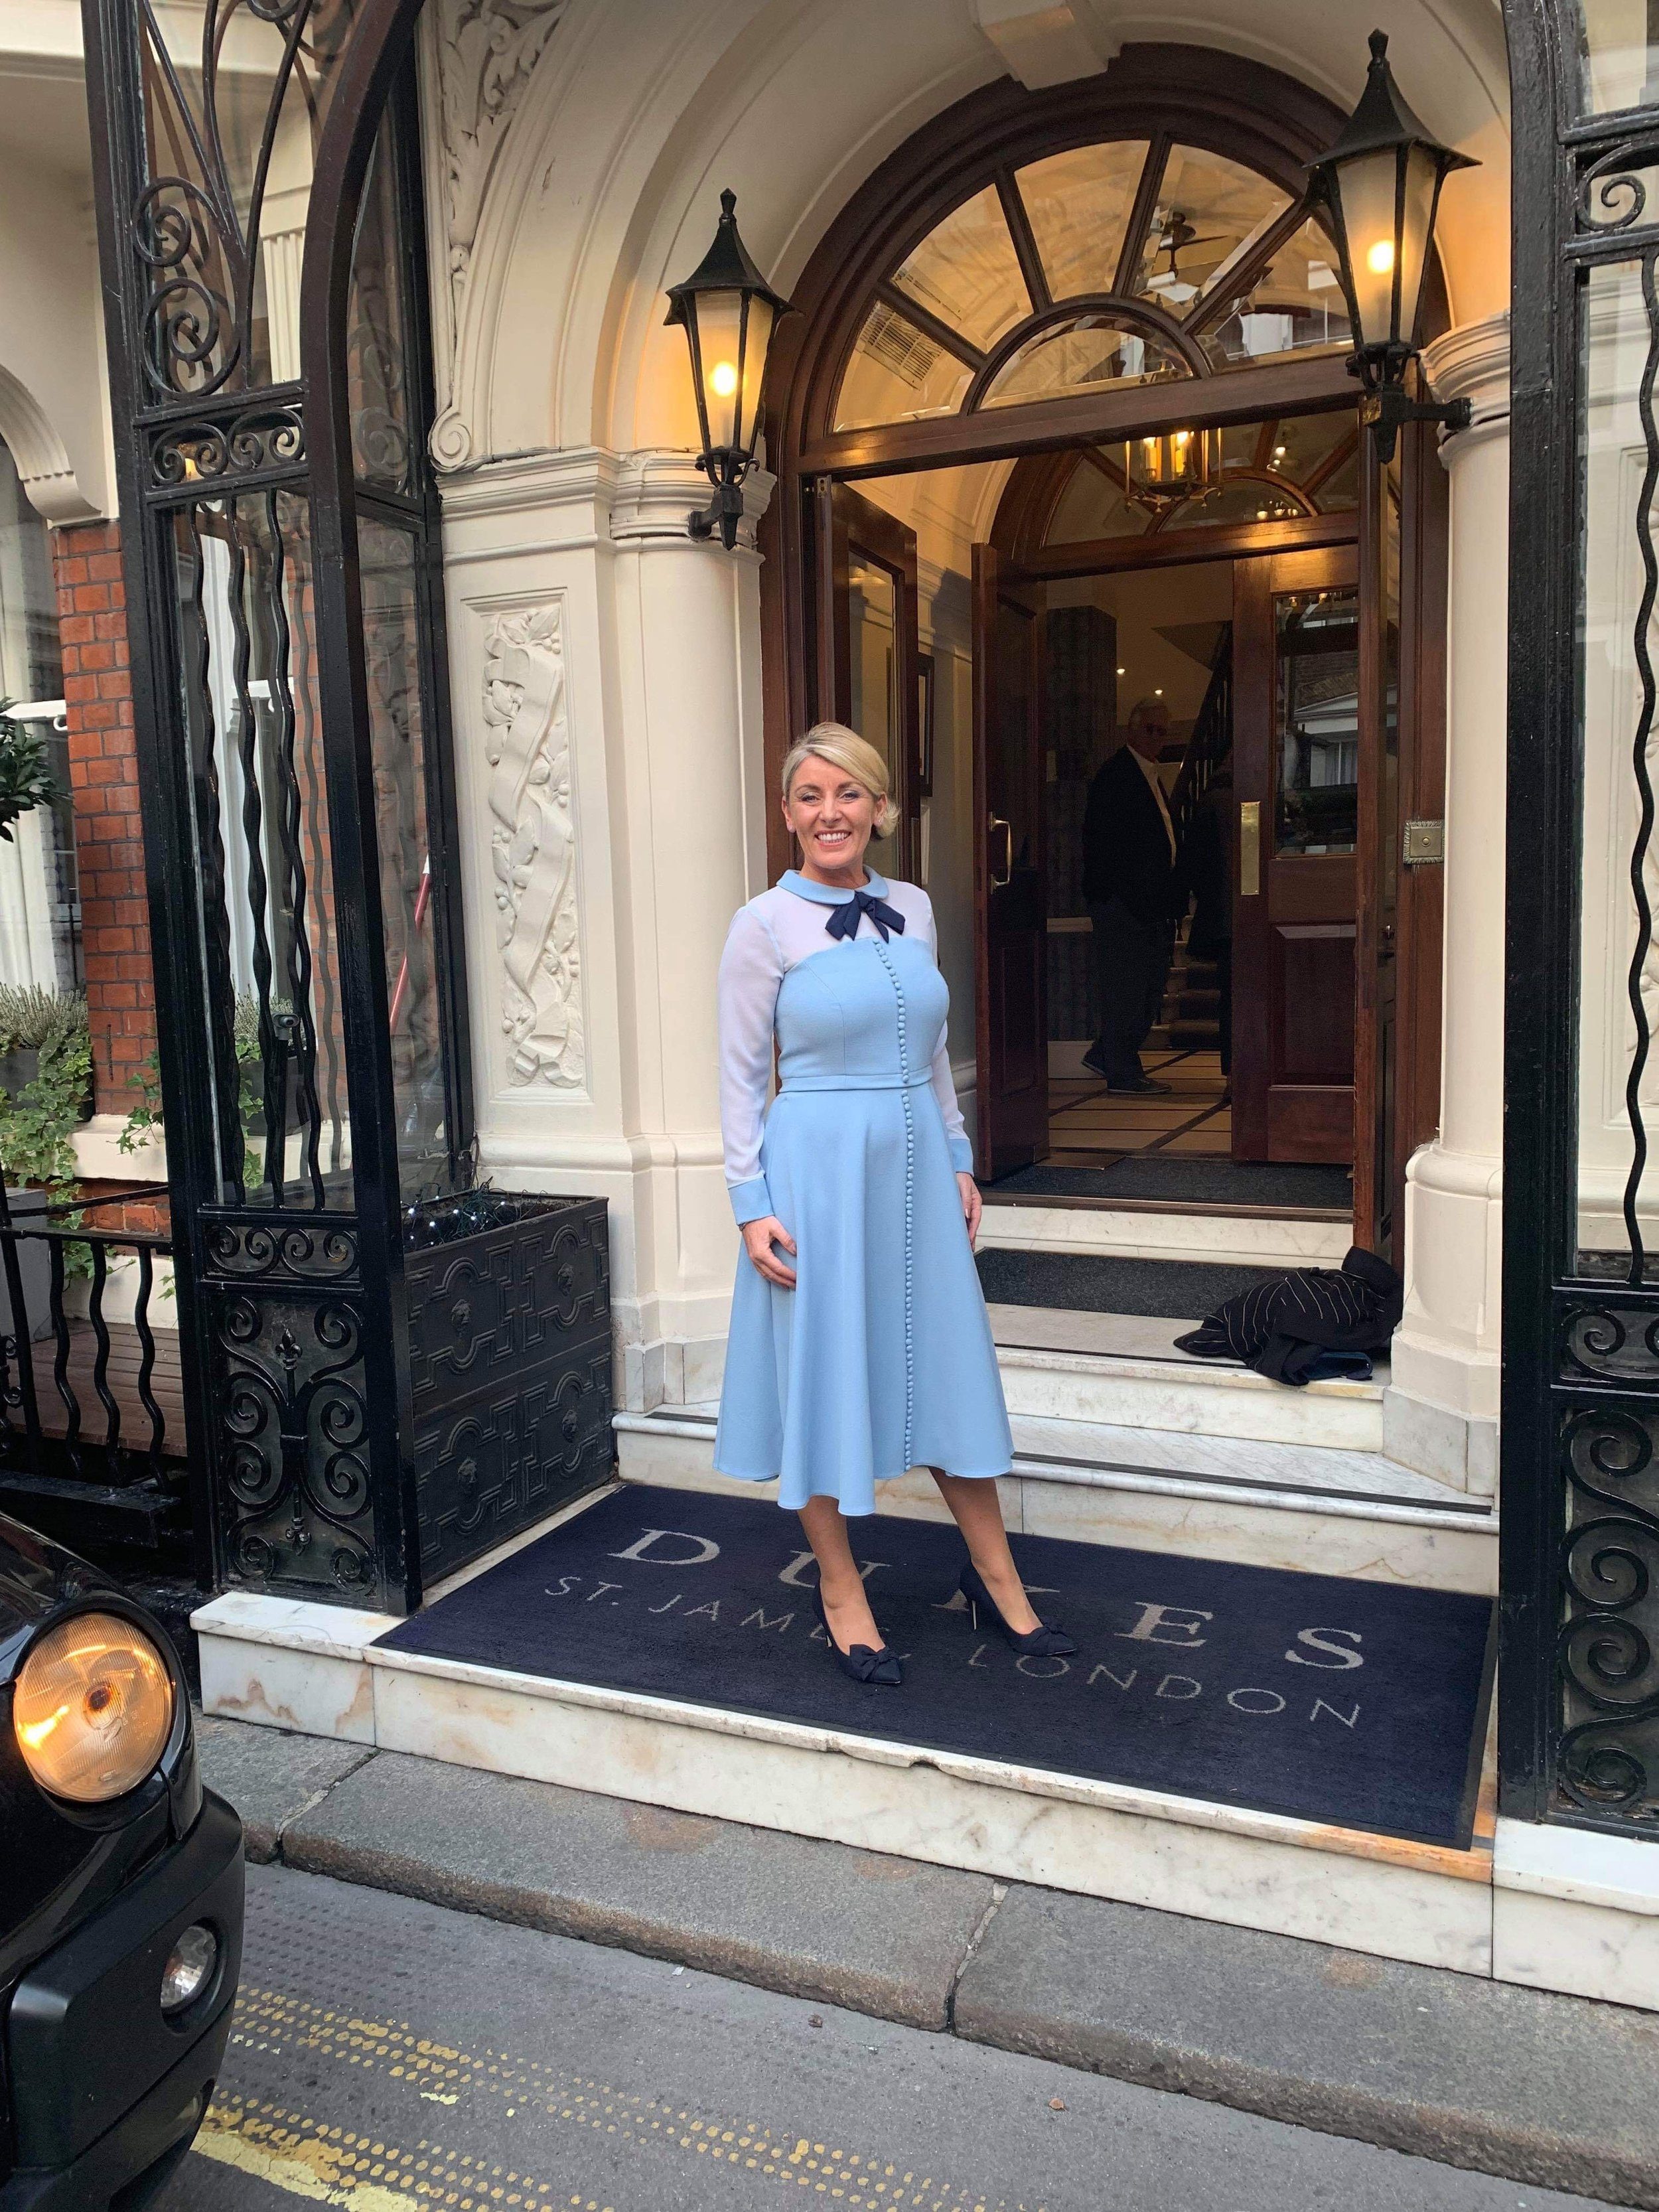 Simone Roche MBE, CEO of Northern Power Women on her way to afternoon tea at The Ritz to celebrate her investiture.